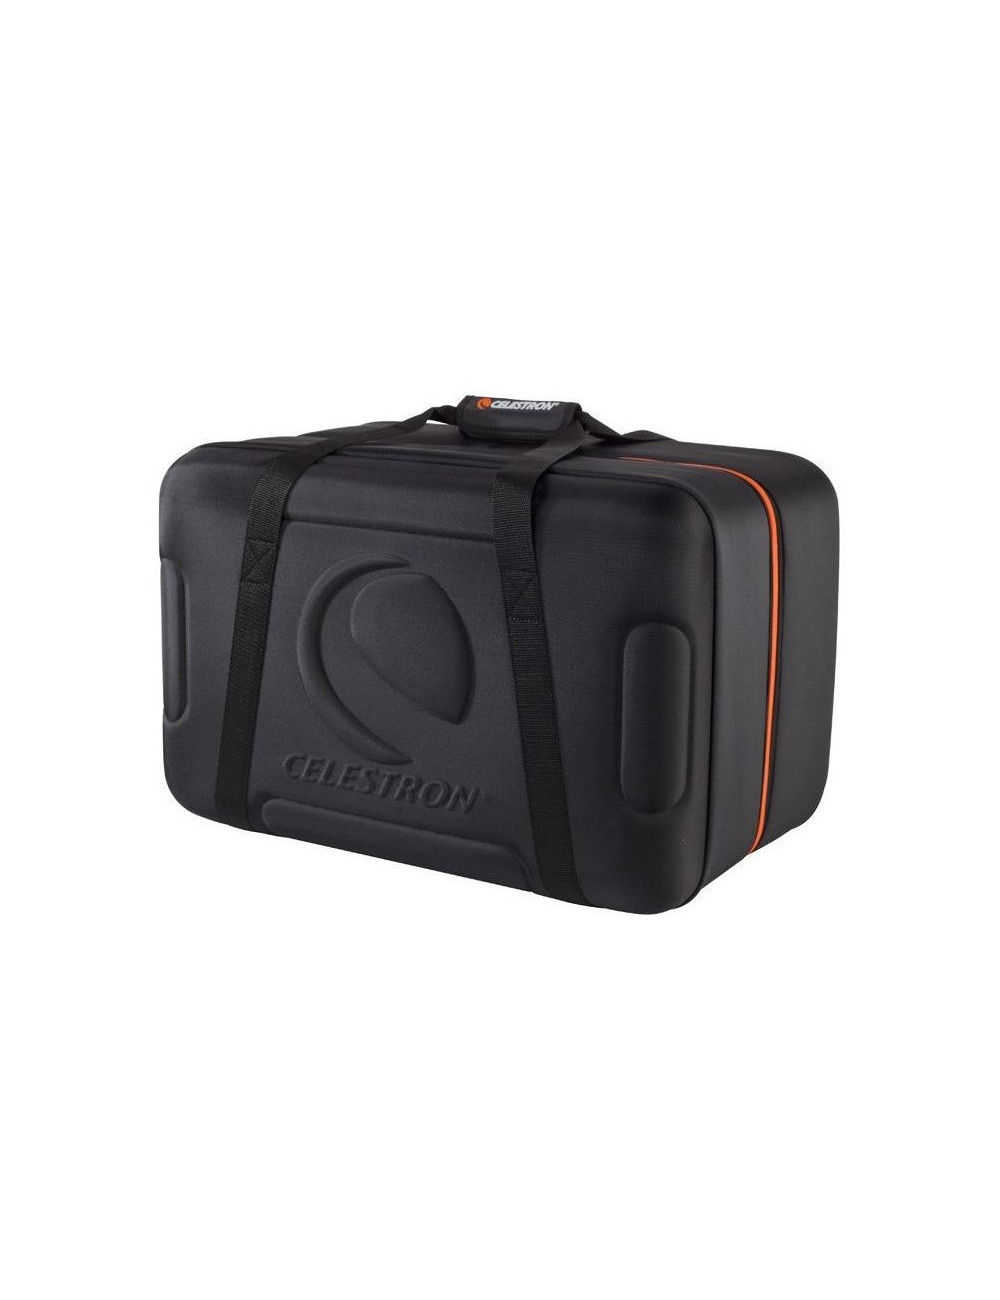 Valise de transport Celestron 4 à 8